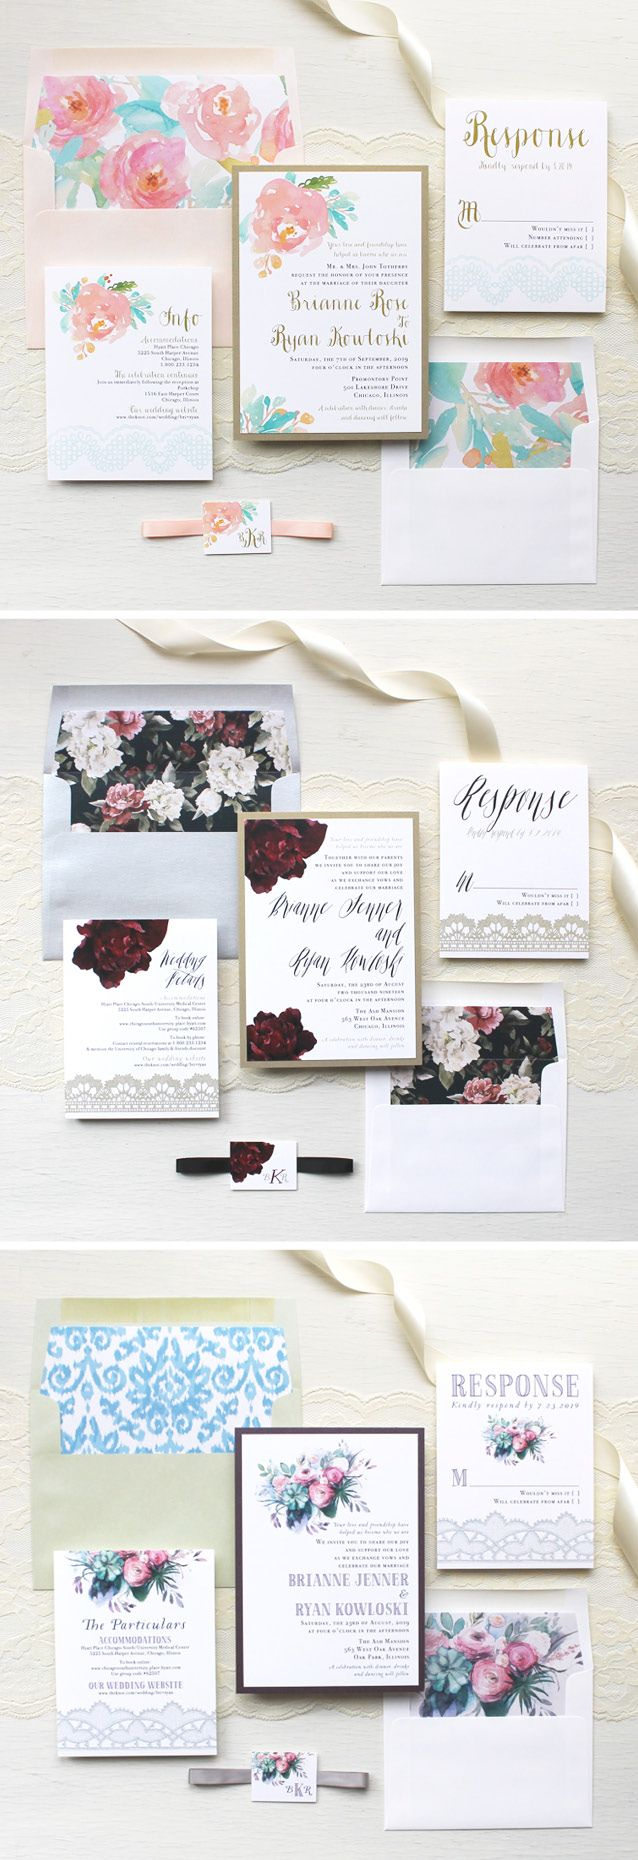 Wedding Invitation Assembly From Romantic Watercolors To Modern Florals We Admit We Are